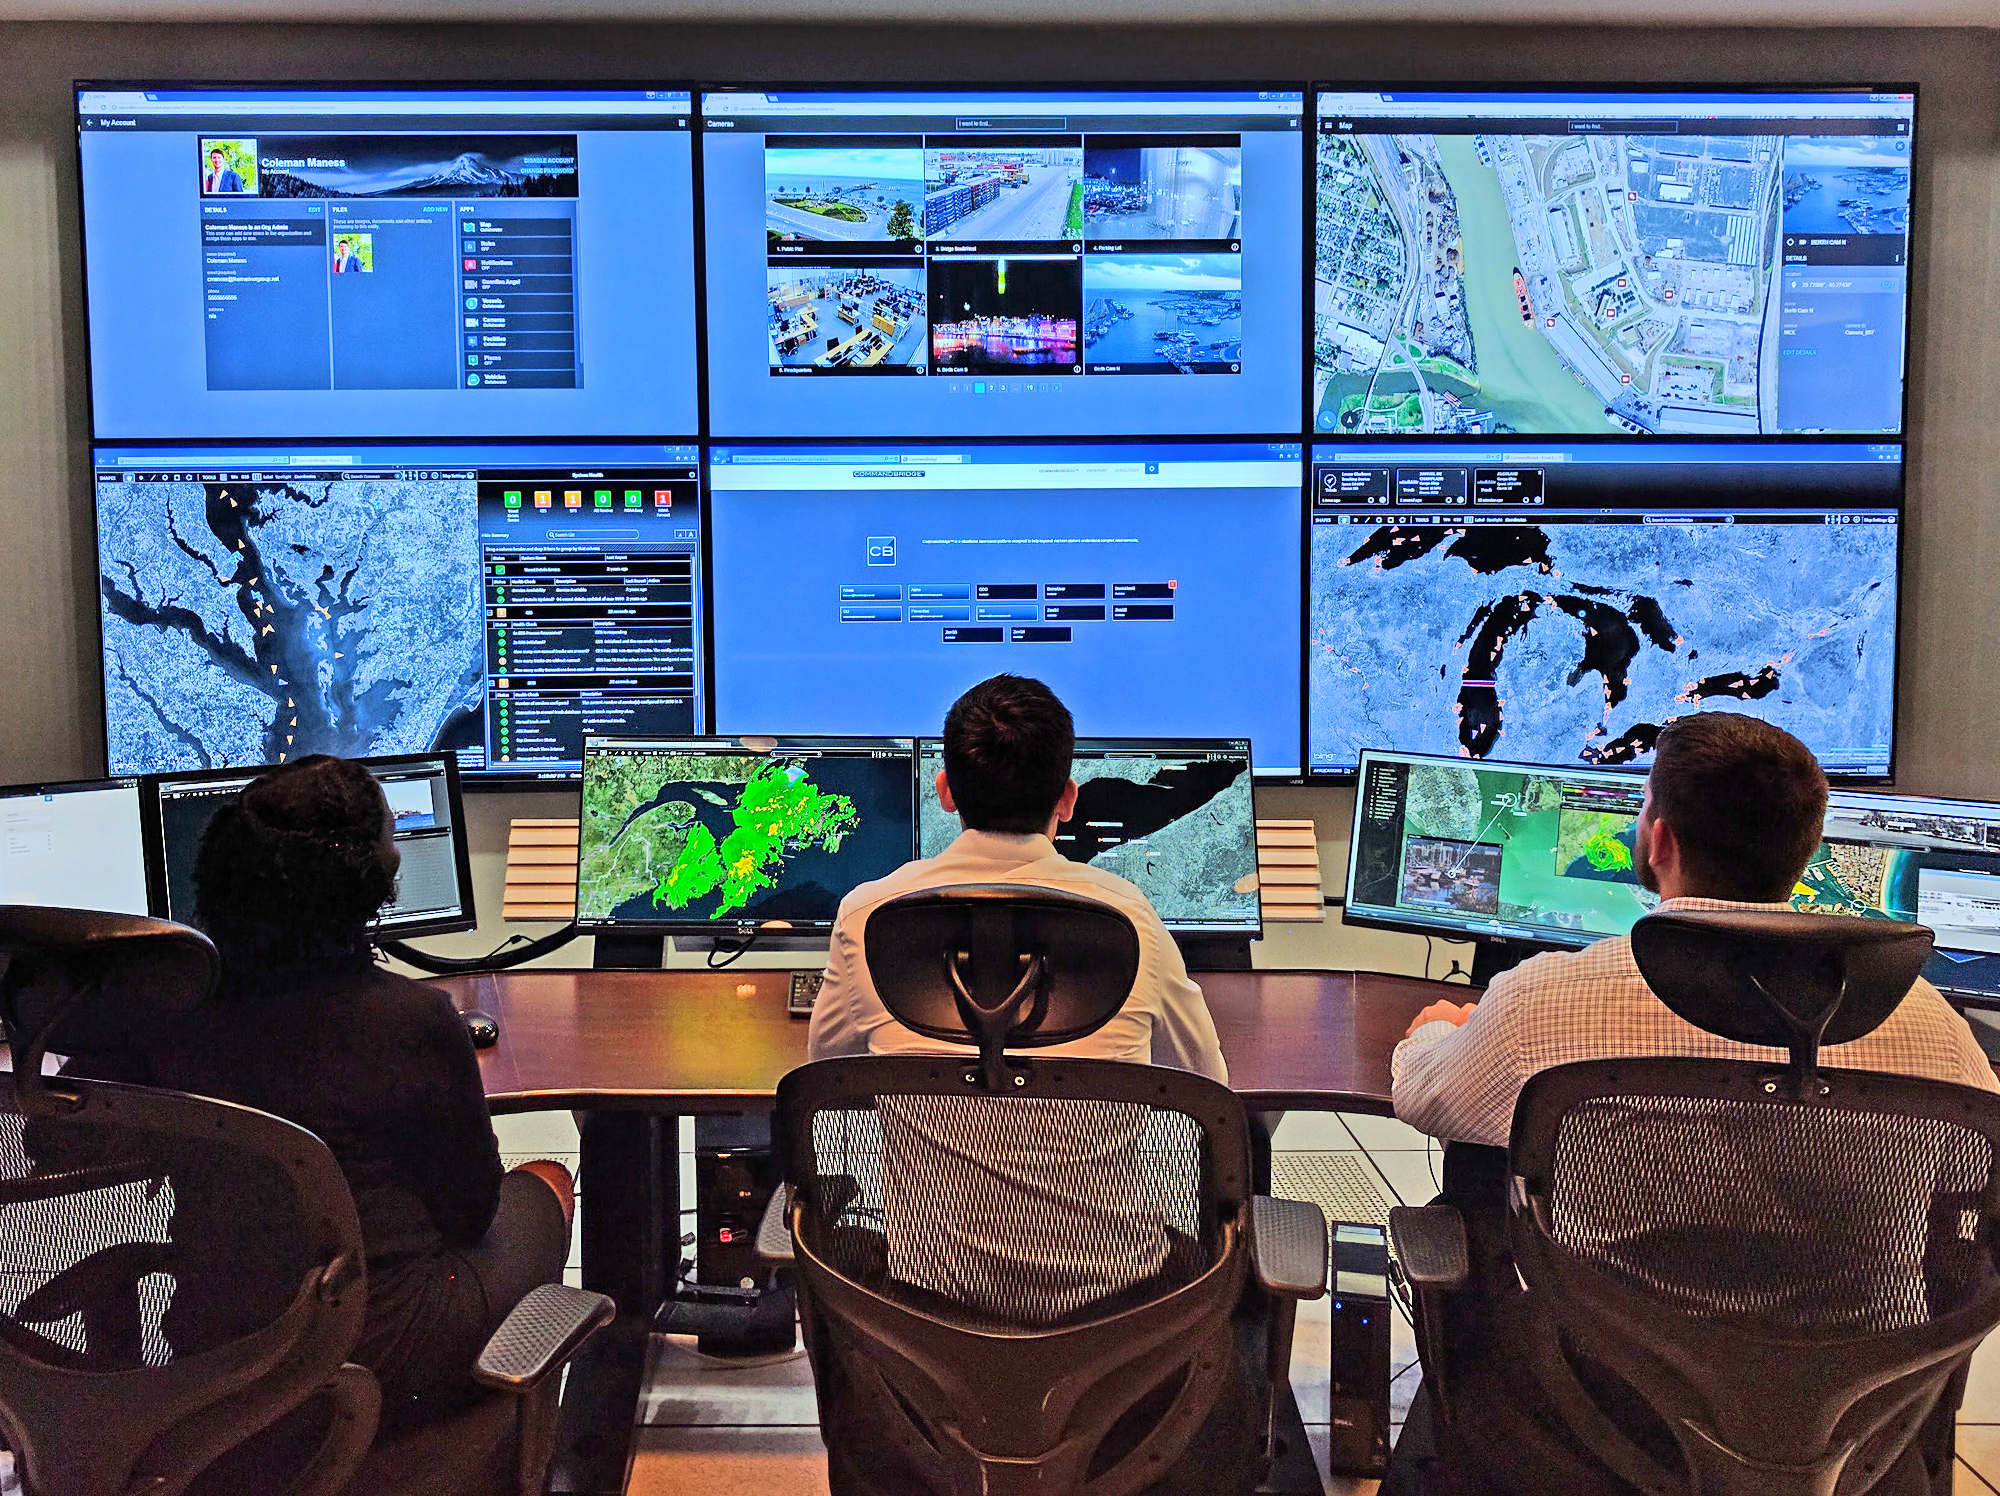 AVERT C2 - ARES Security Command Center